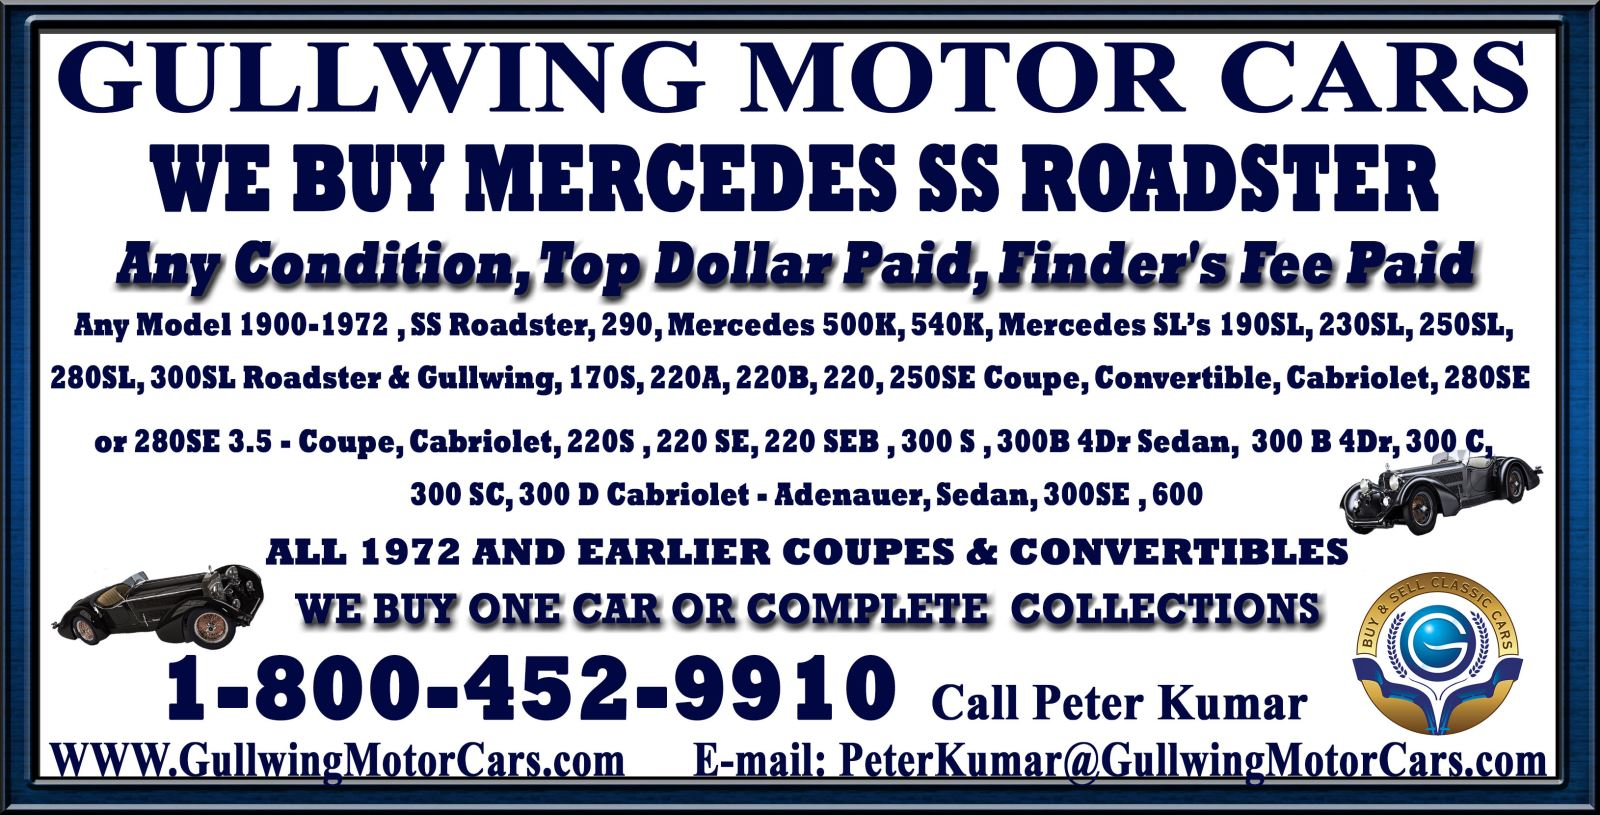 Selling Classic Mercedes SS Roadster | We Buy Vintage Mercedes SS Roadster | Call Gullwing Motor to Sell Classic Mercedes SS Roadster